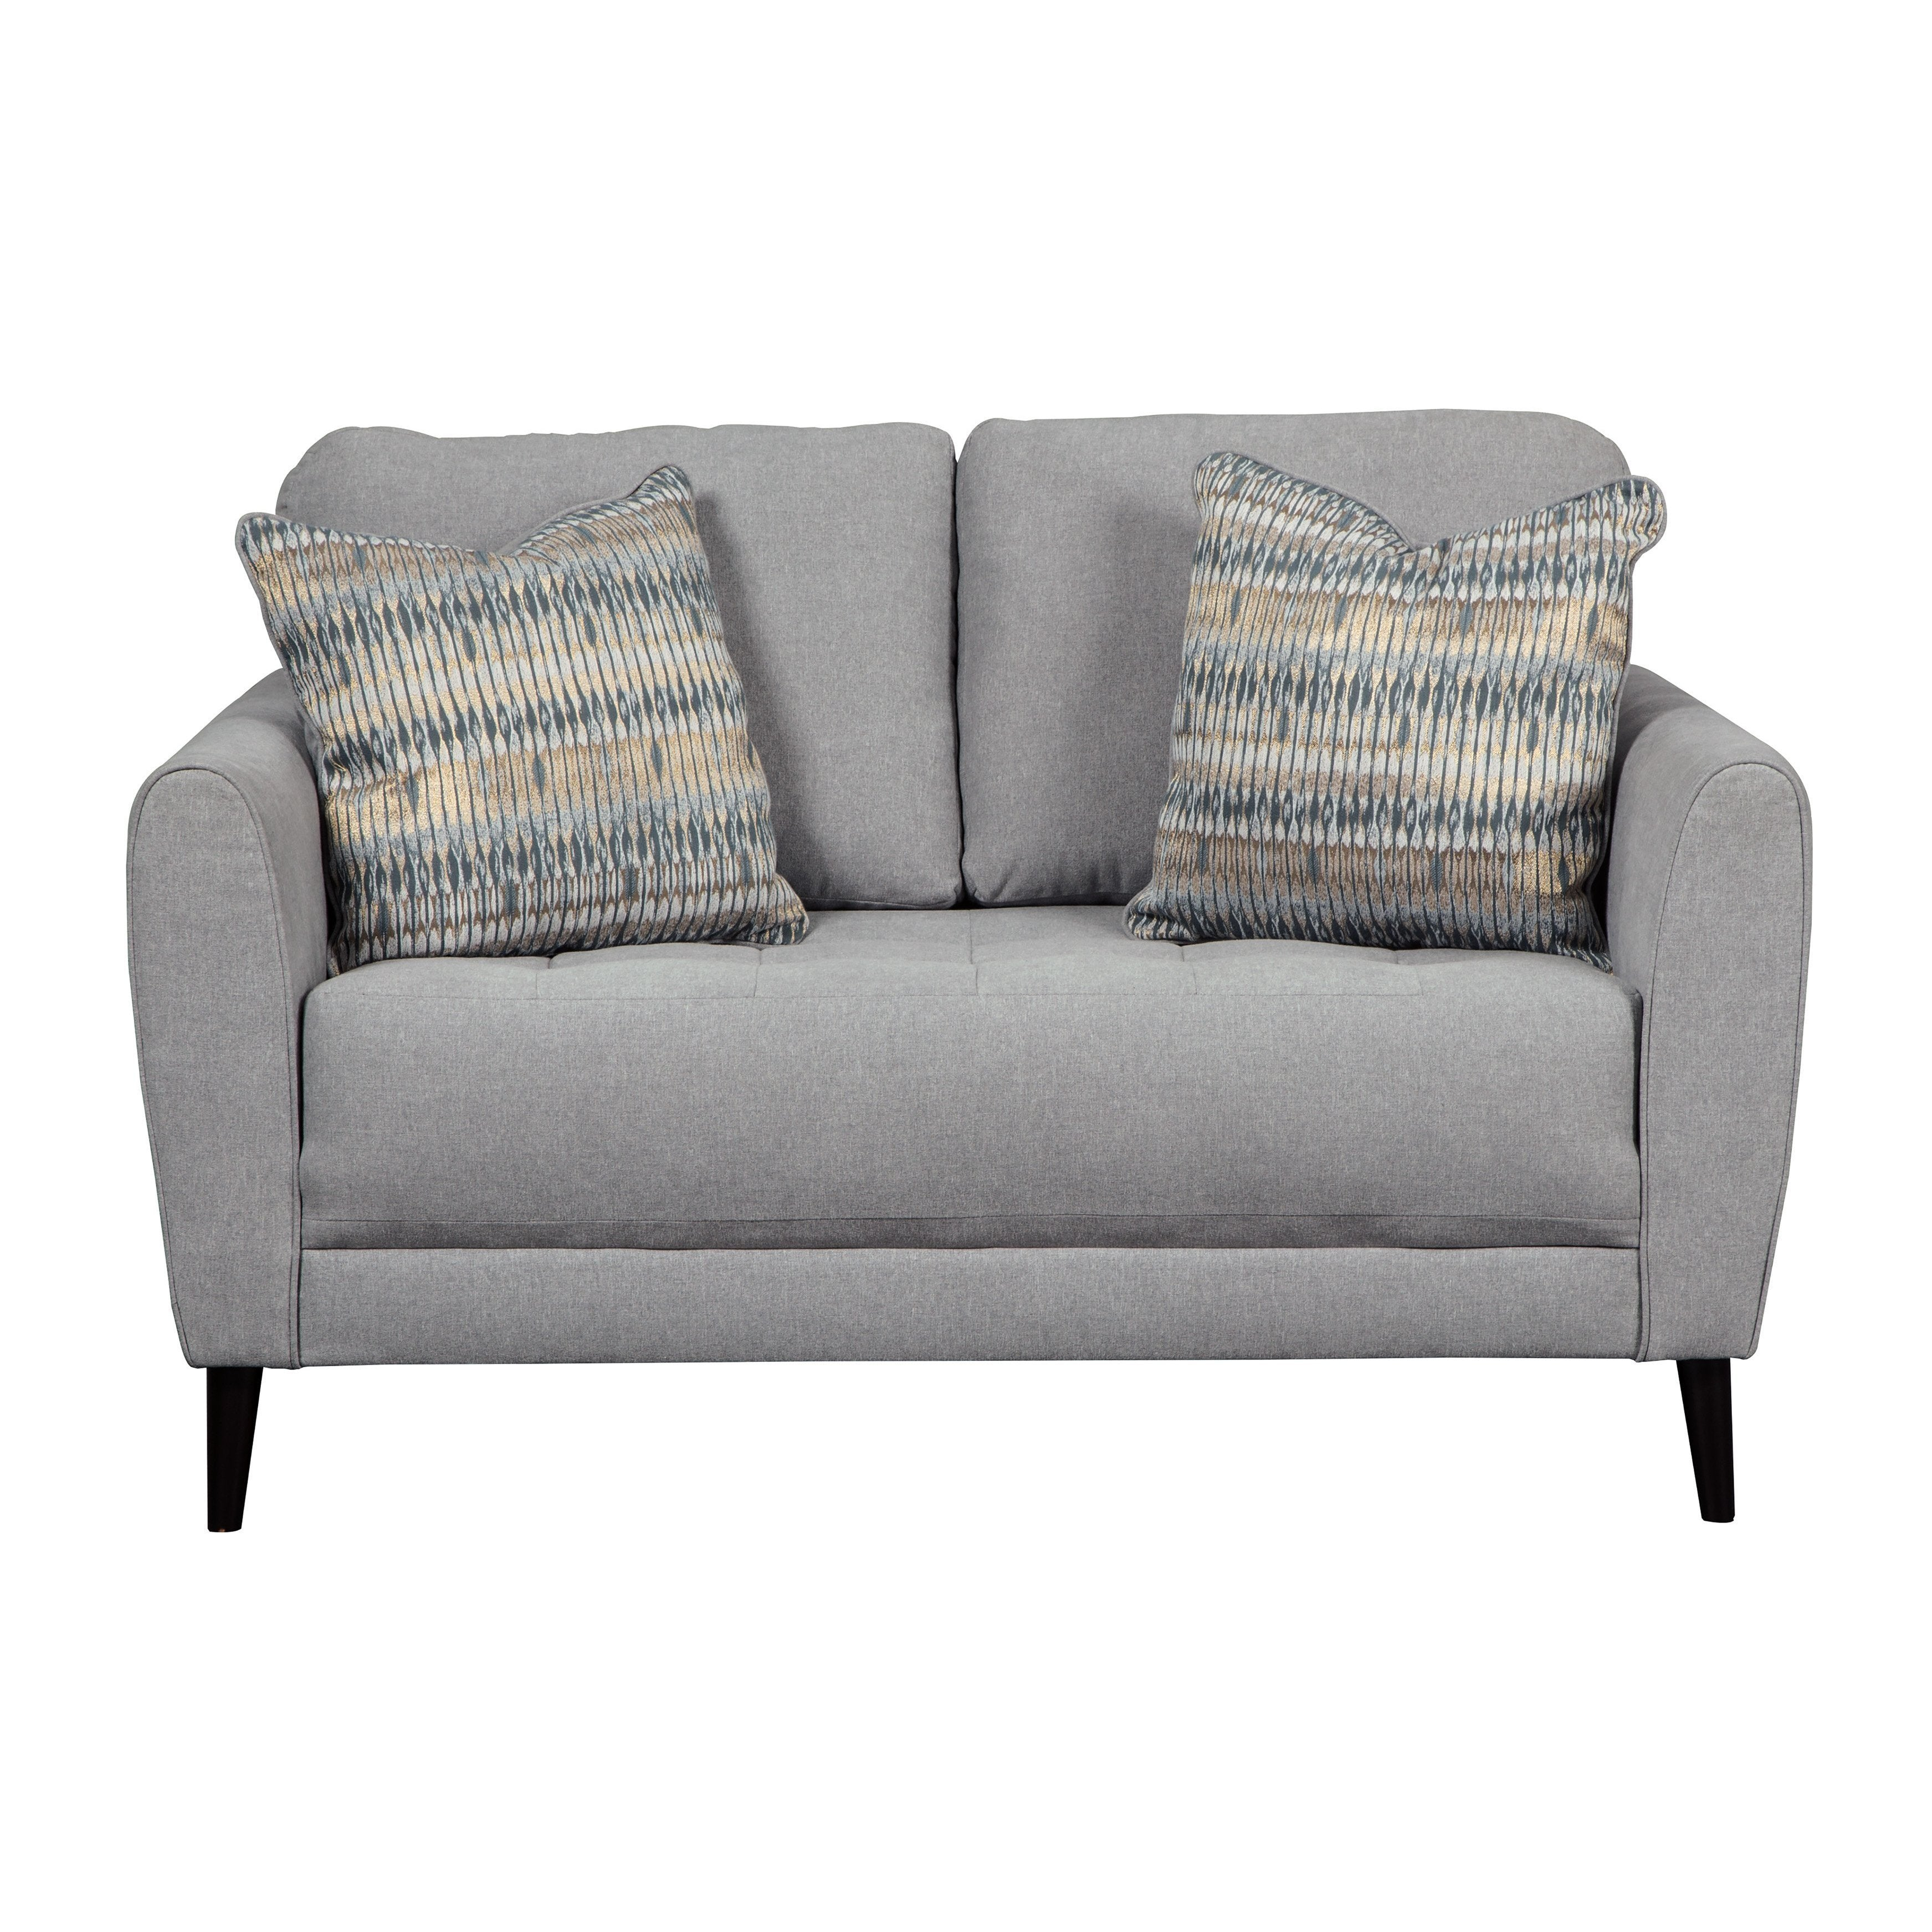 Cardallo Loveseat